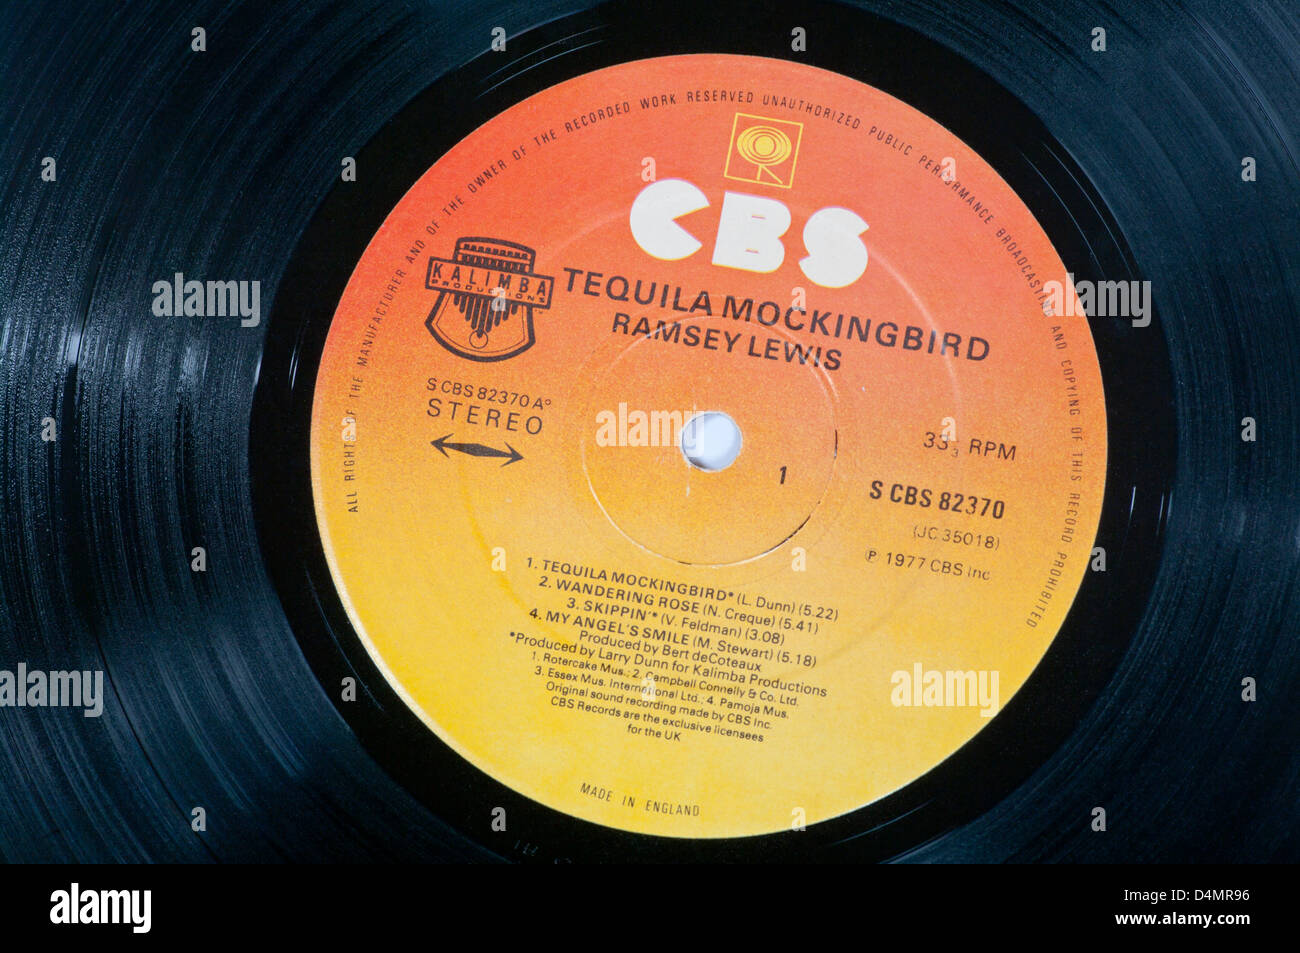 CBS Record Label On A Vinyl LP Record - Stock Image